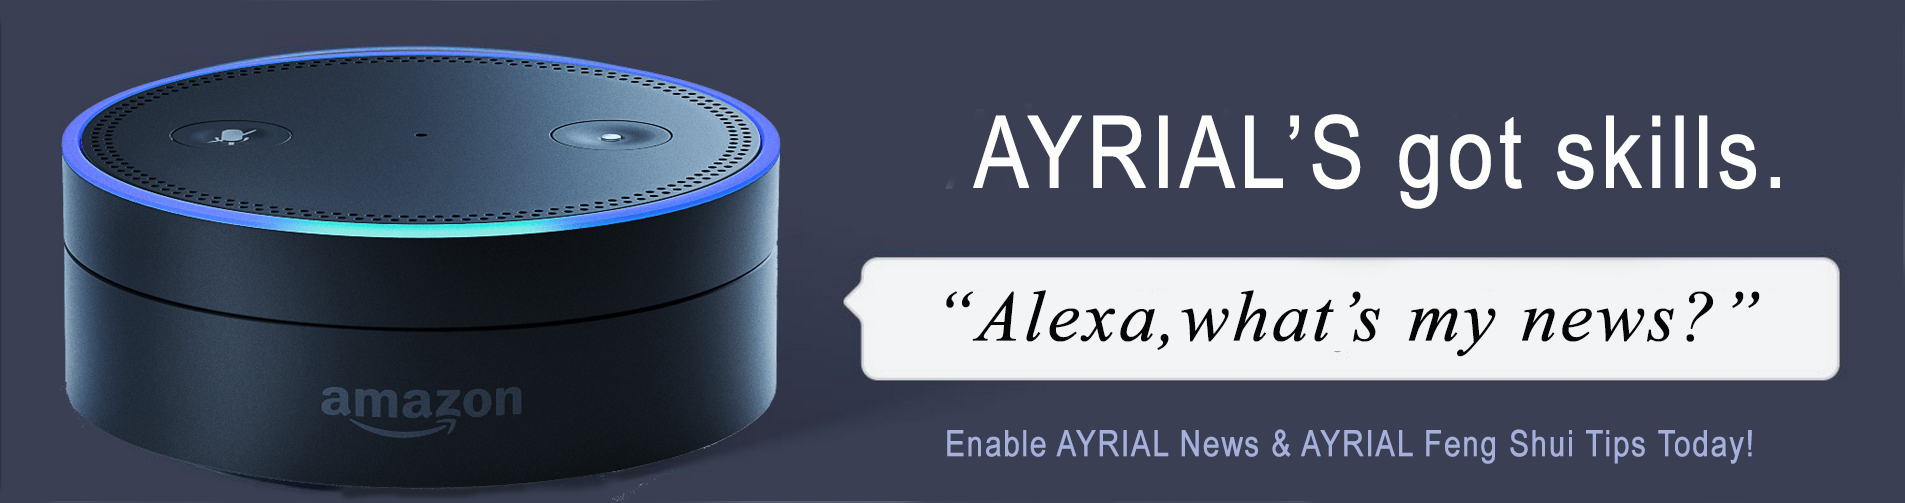 AYRIAL News Alexa skill enables listeners to hear healthy lifestyle news including streaming podcasts